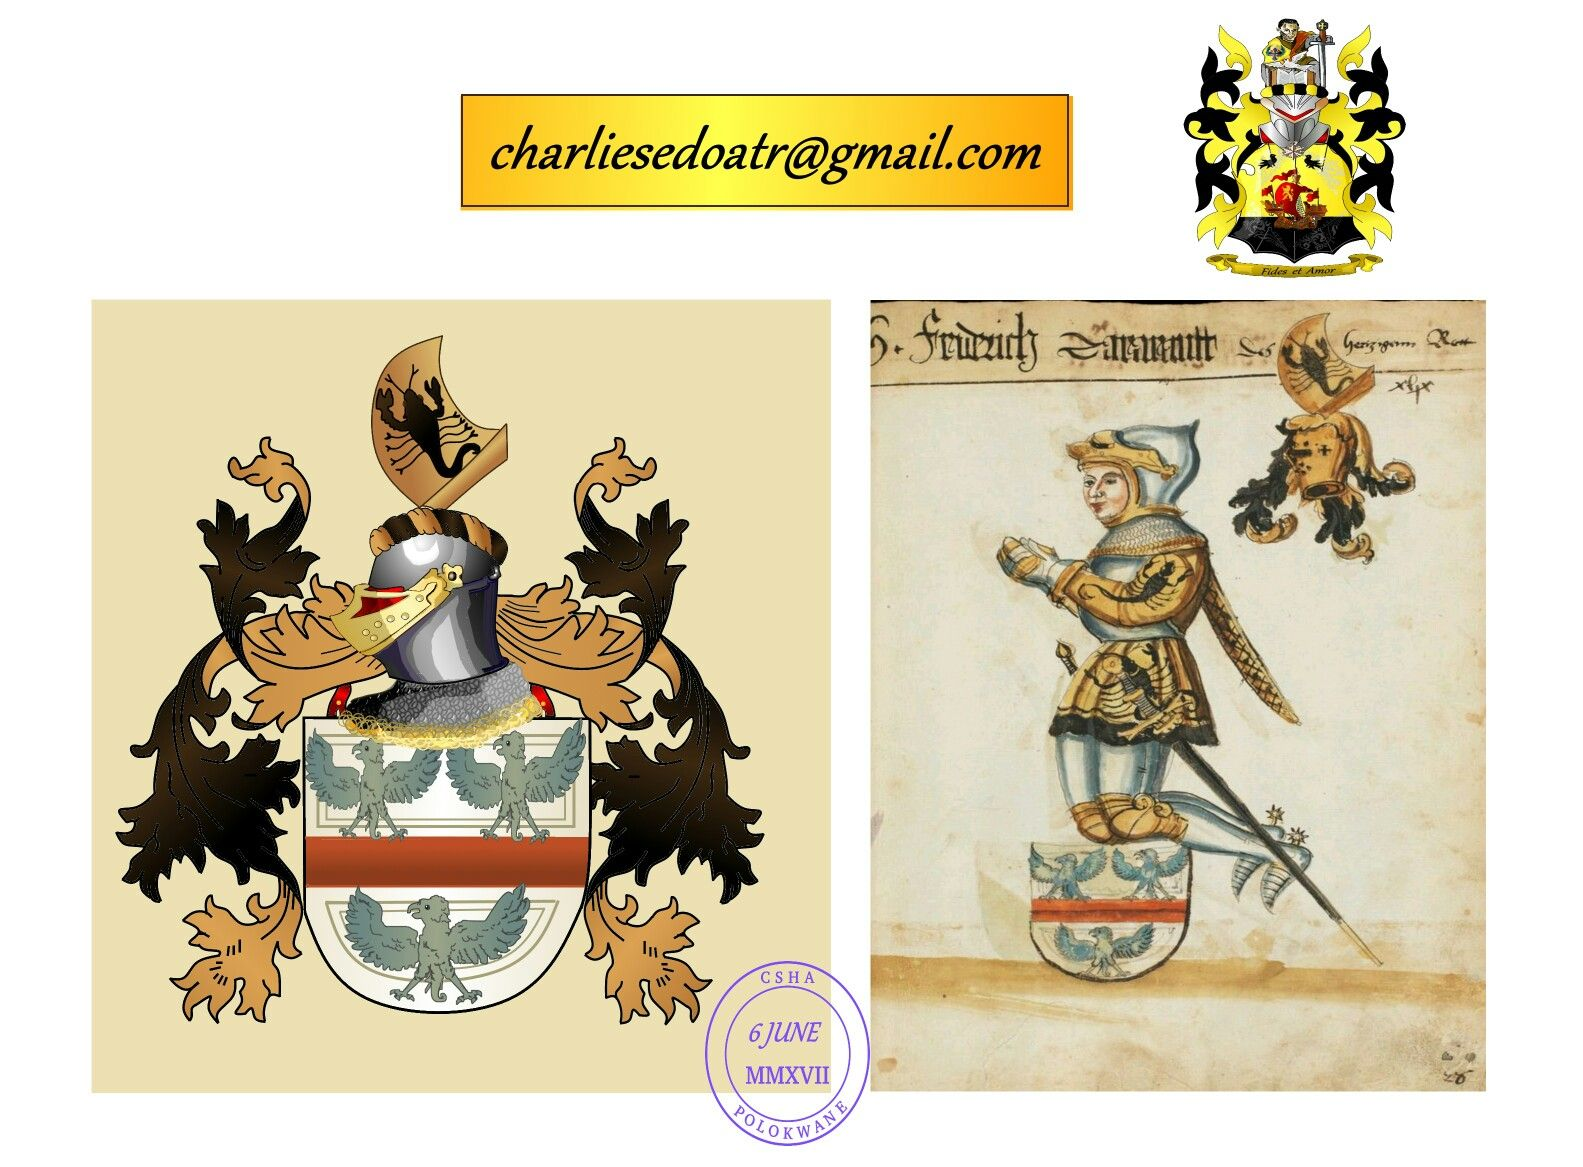 Who Designed The Coat Of Arms | How I Would Have Designed The Coat Of Arms For This Painting